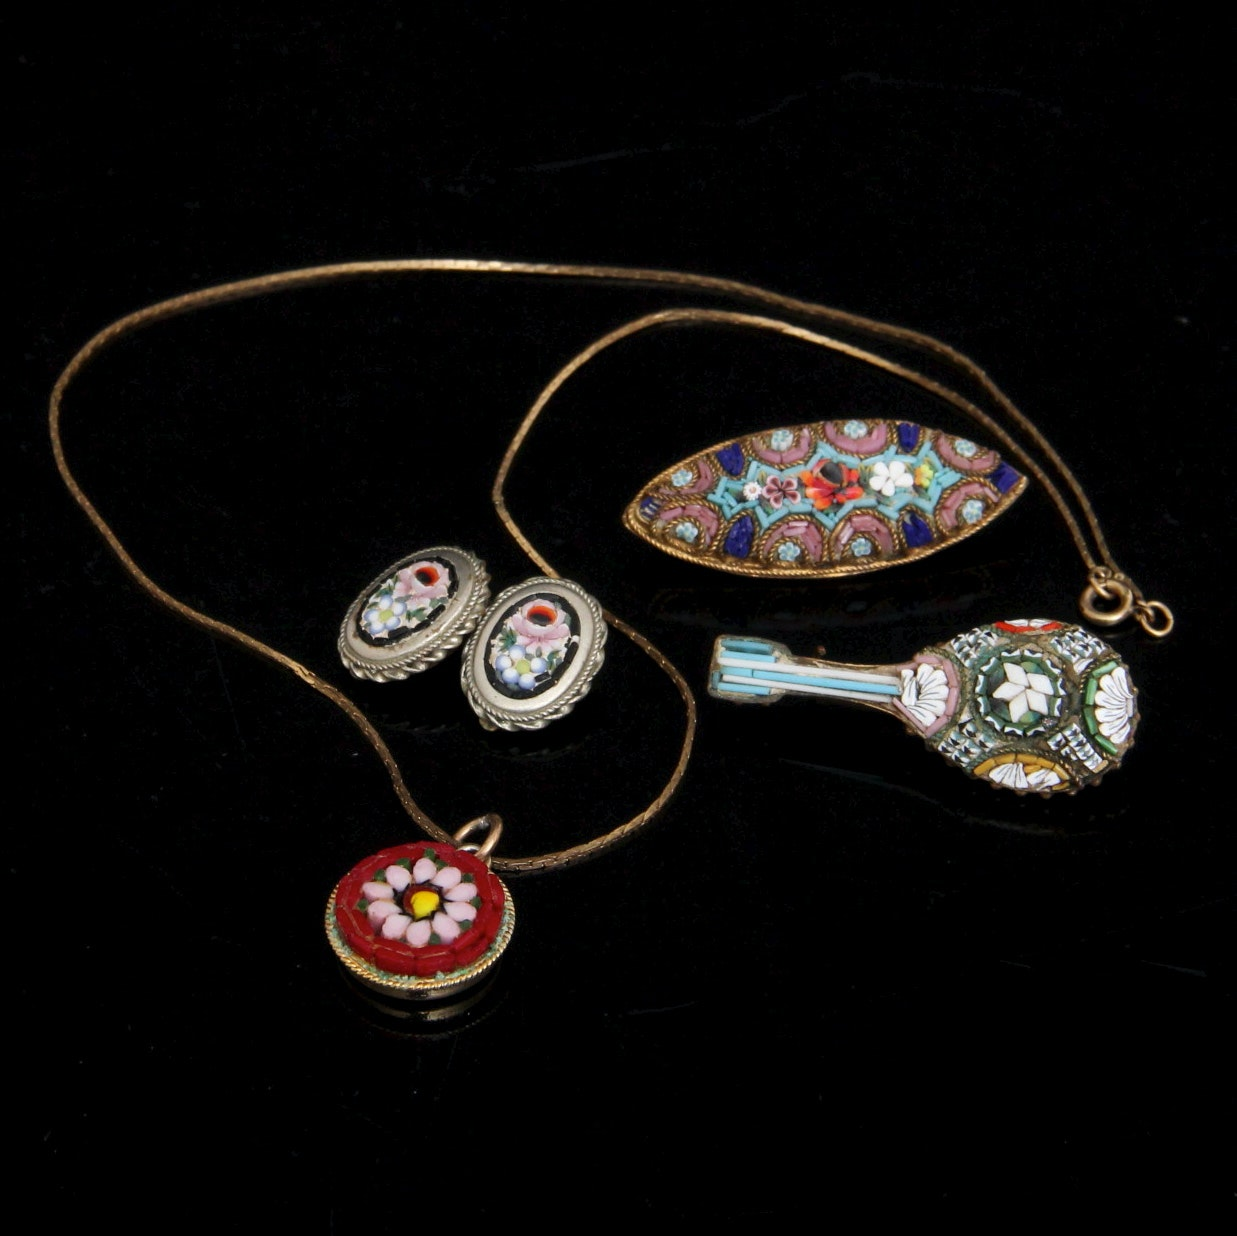 dating micro mosaic jewelry Posts about dating jewellery written by nic glass tiles and is properly known as micro mosaic jewellery, a distinct looking type of jewelry which has been made.